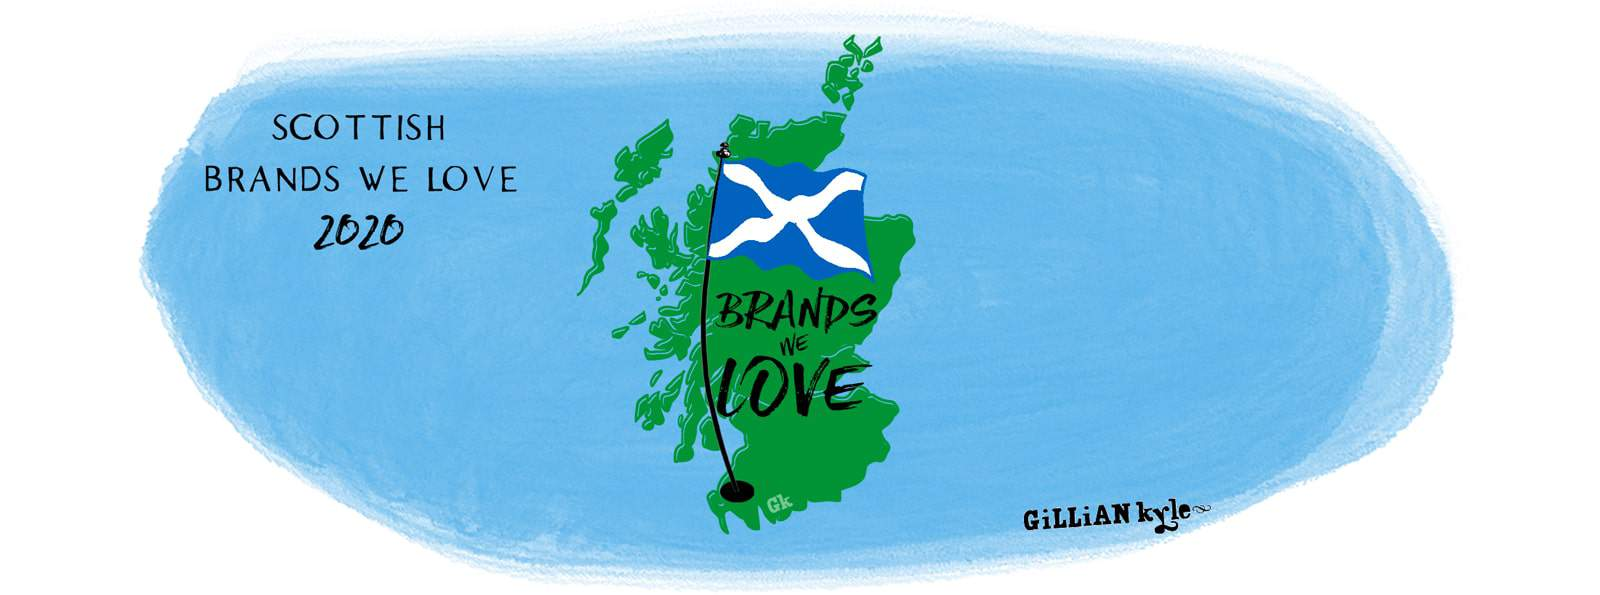 Scottish brands we love 2020 illustration by Gillian Kyle